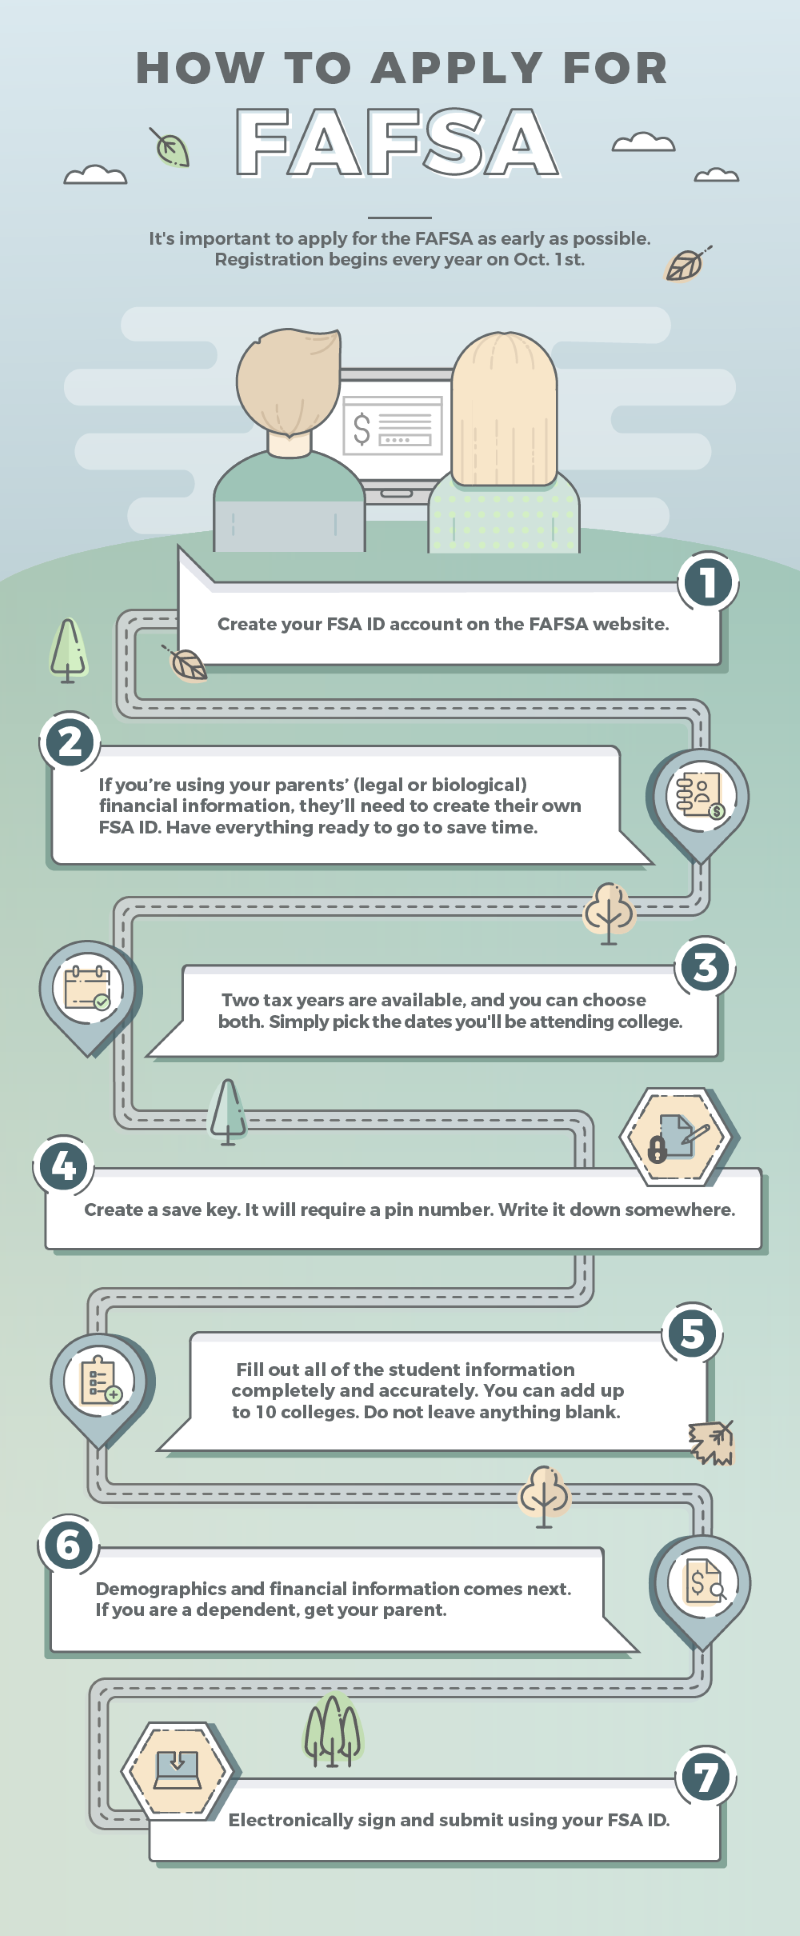 How to Apply for FAFSA infographic